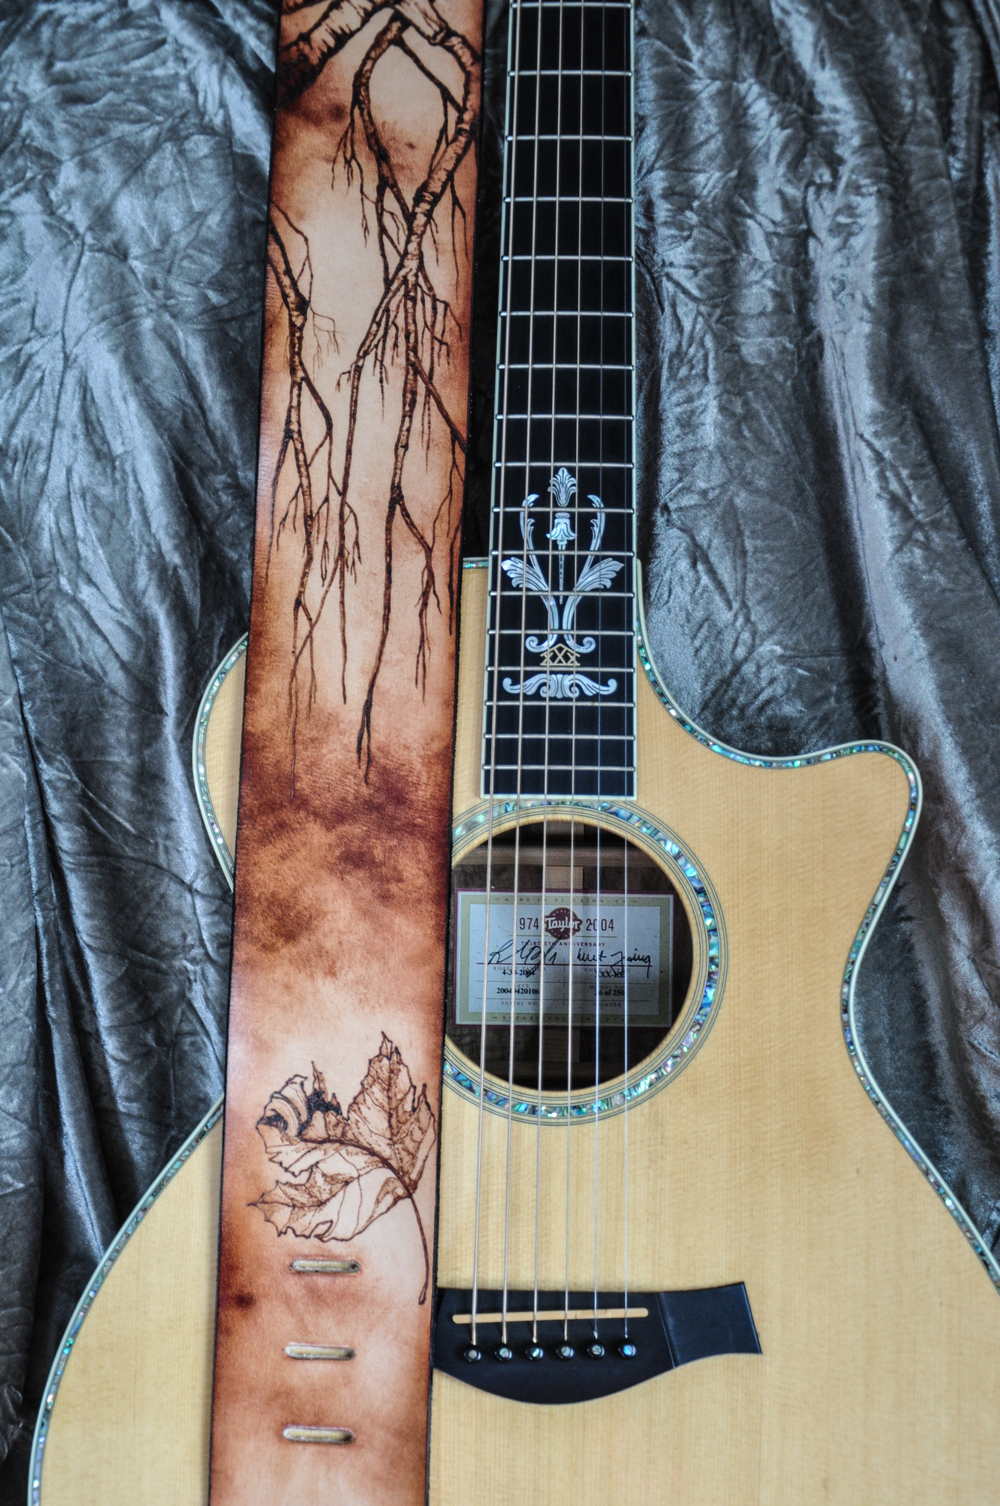 pyrography-tree-and-leaf-guitar-strap-1060.jpg